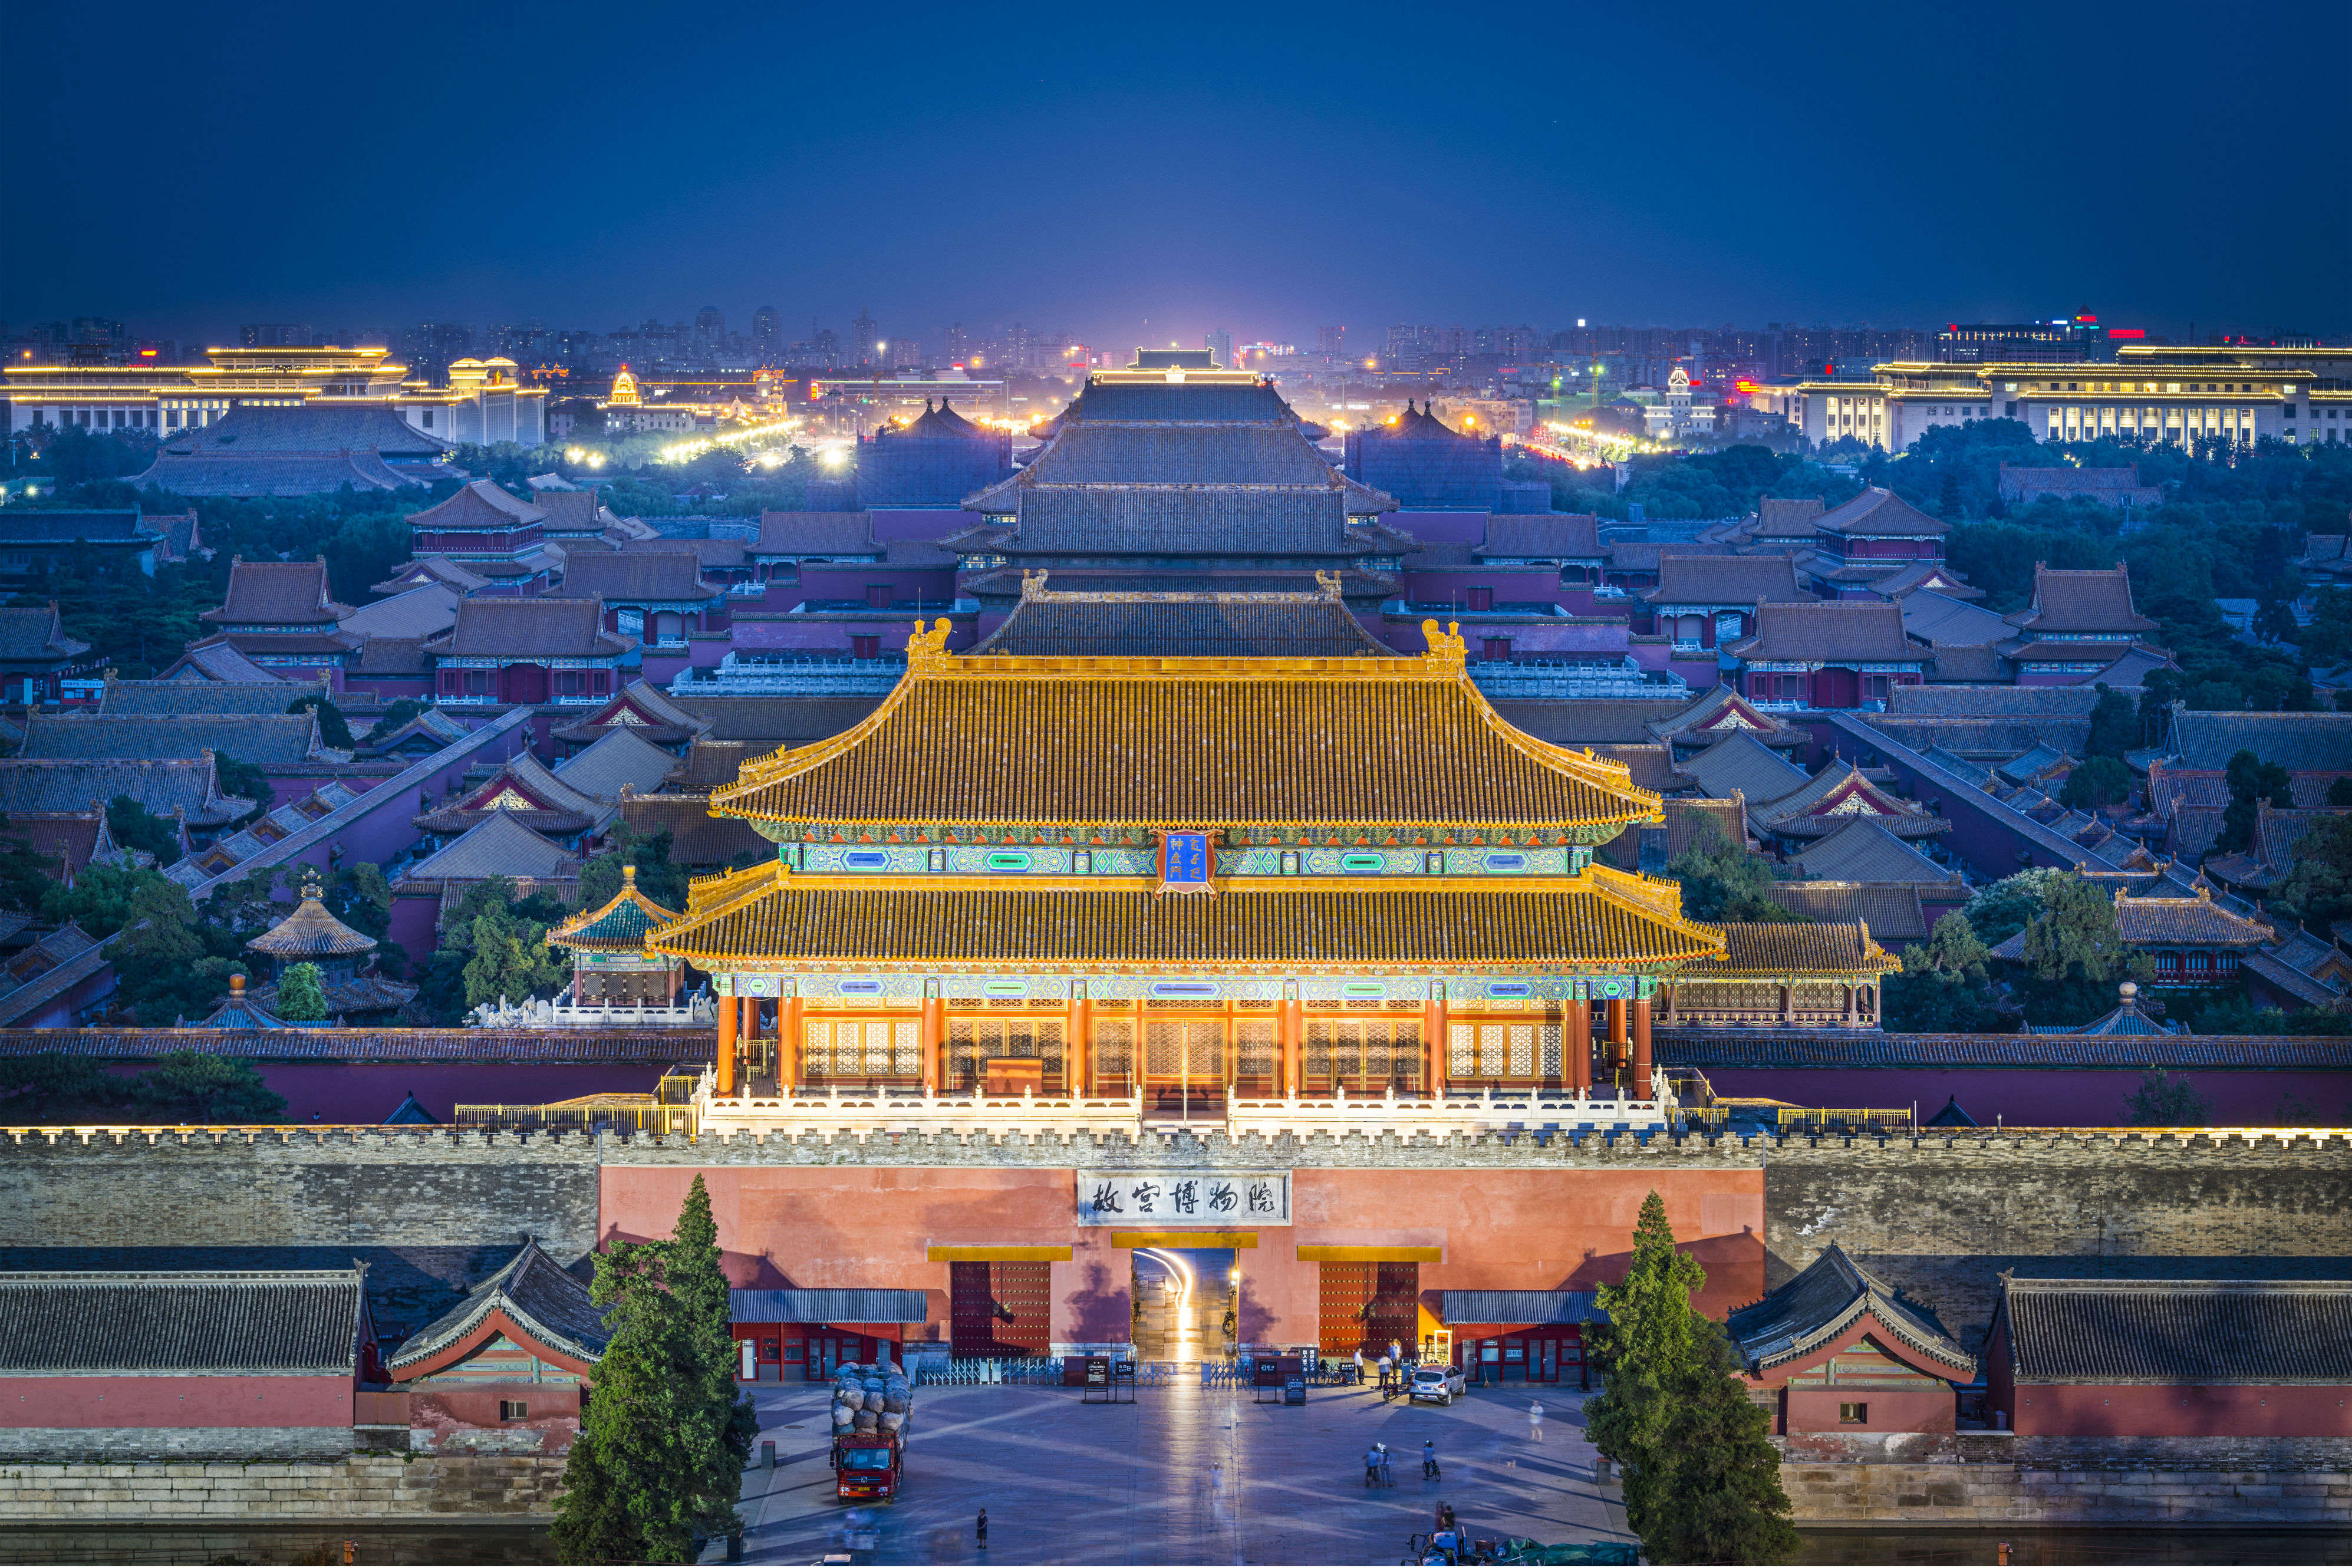 China's Forbidden City opens up for night tours for 2 days after 94 long years